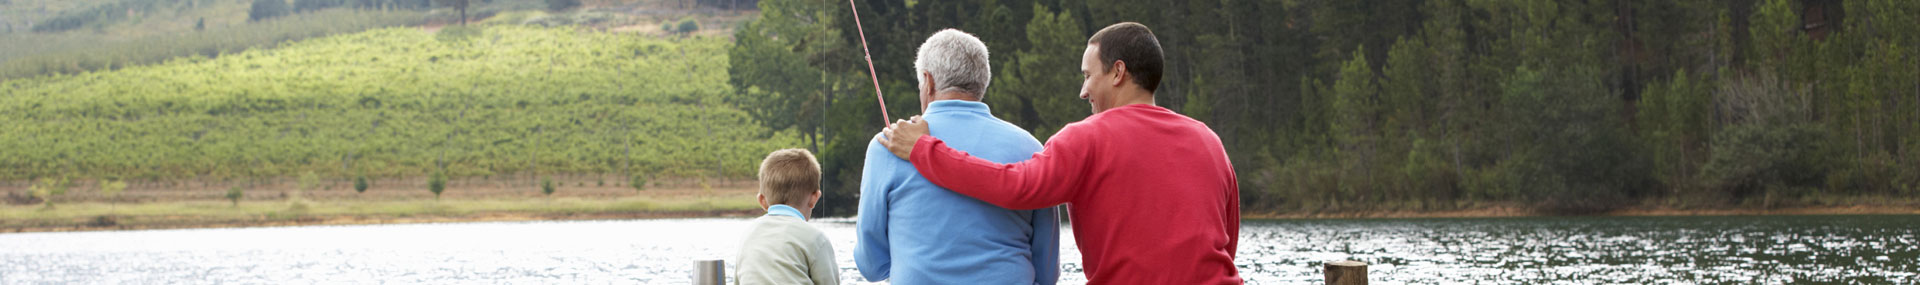 Adult son fishing with elder father and young son symbolizing families that are caring for aging parents and young children.